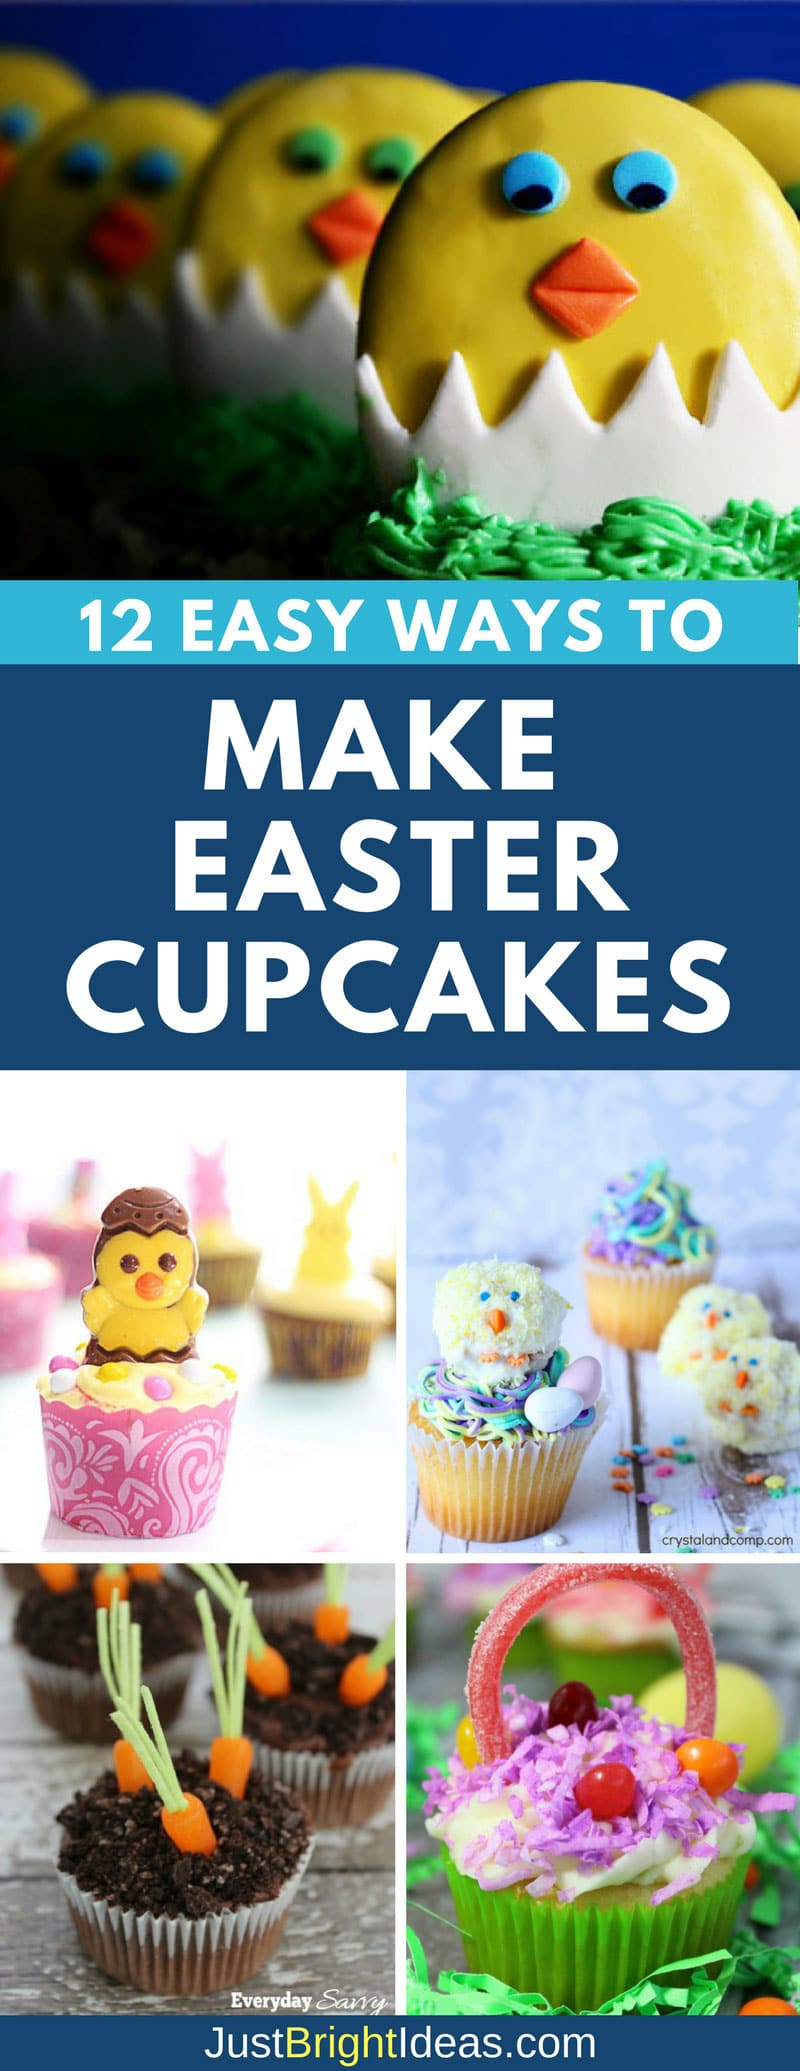 Easter Cupcake Recipes - Pinterest